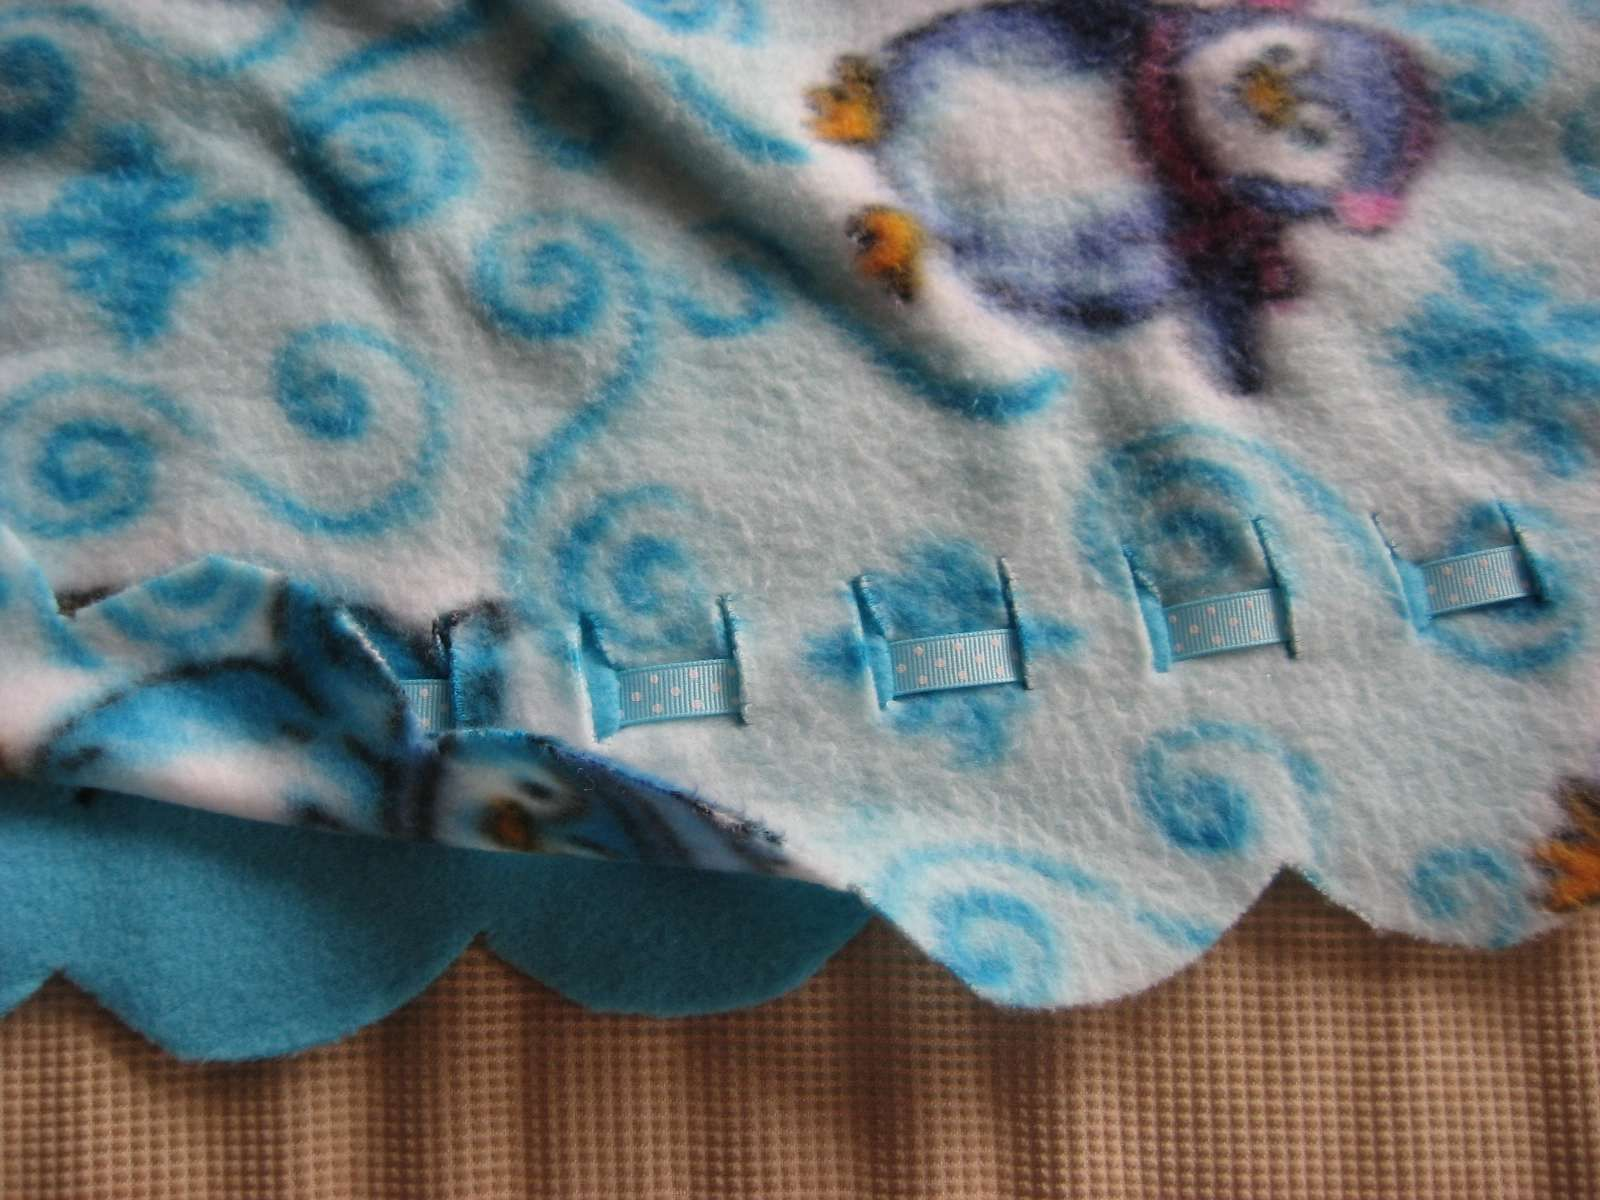 no sew tie fleece blanket Care for fleece blankets: machine wash cool + tumble dry low or no heat = soft  blankets forever.